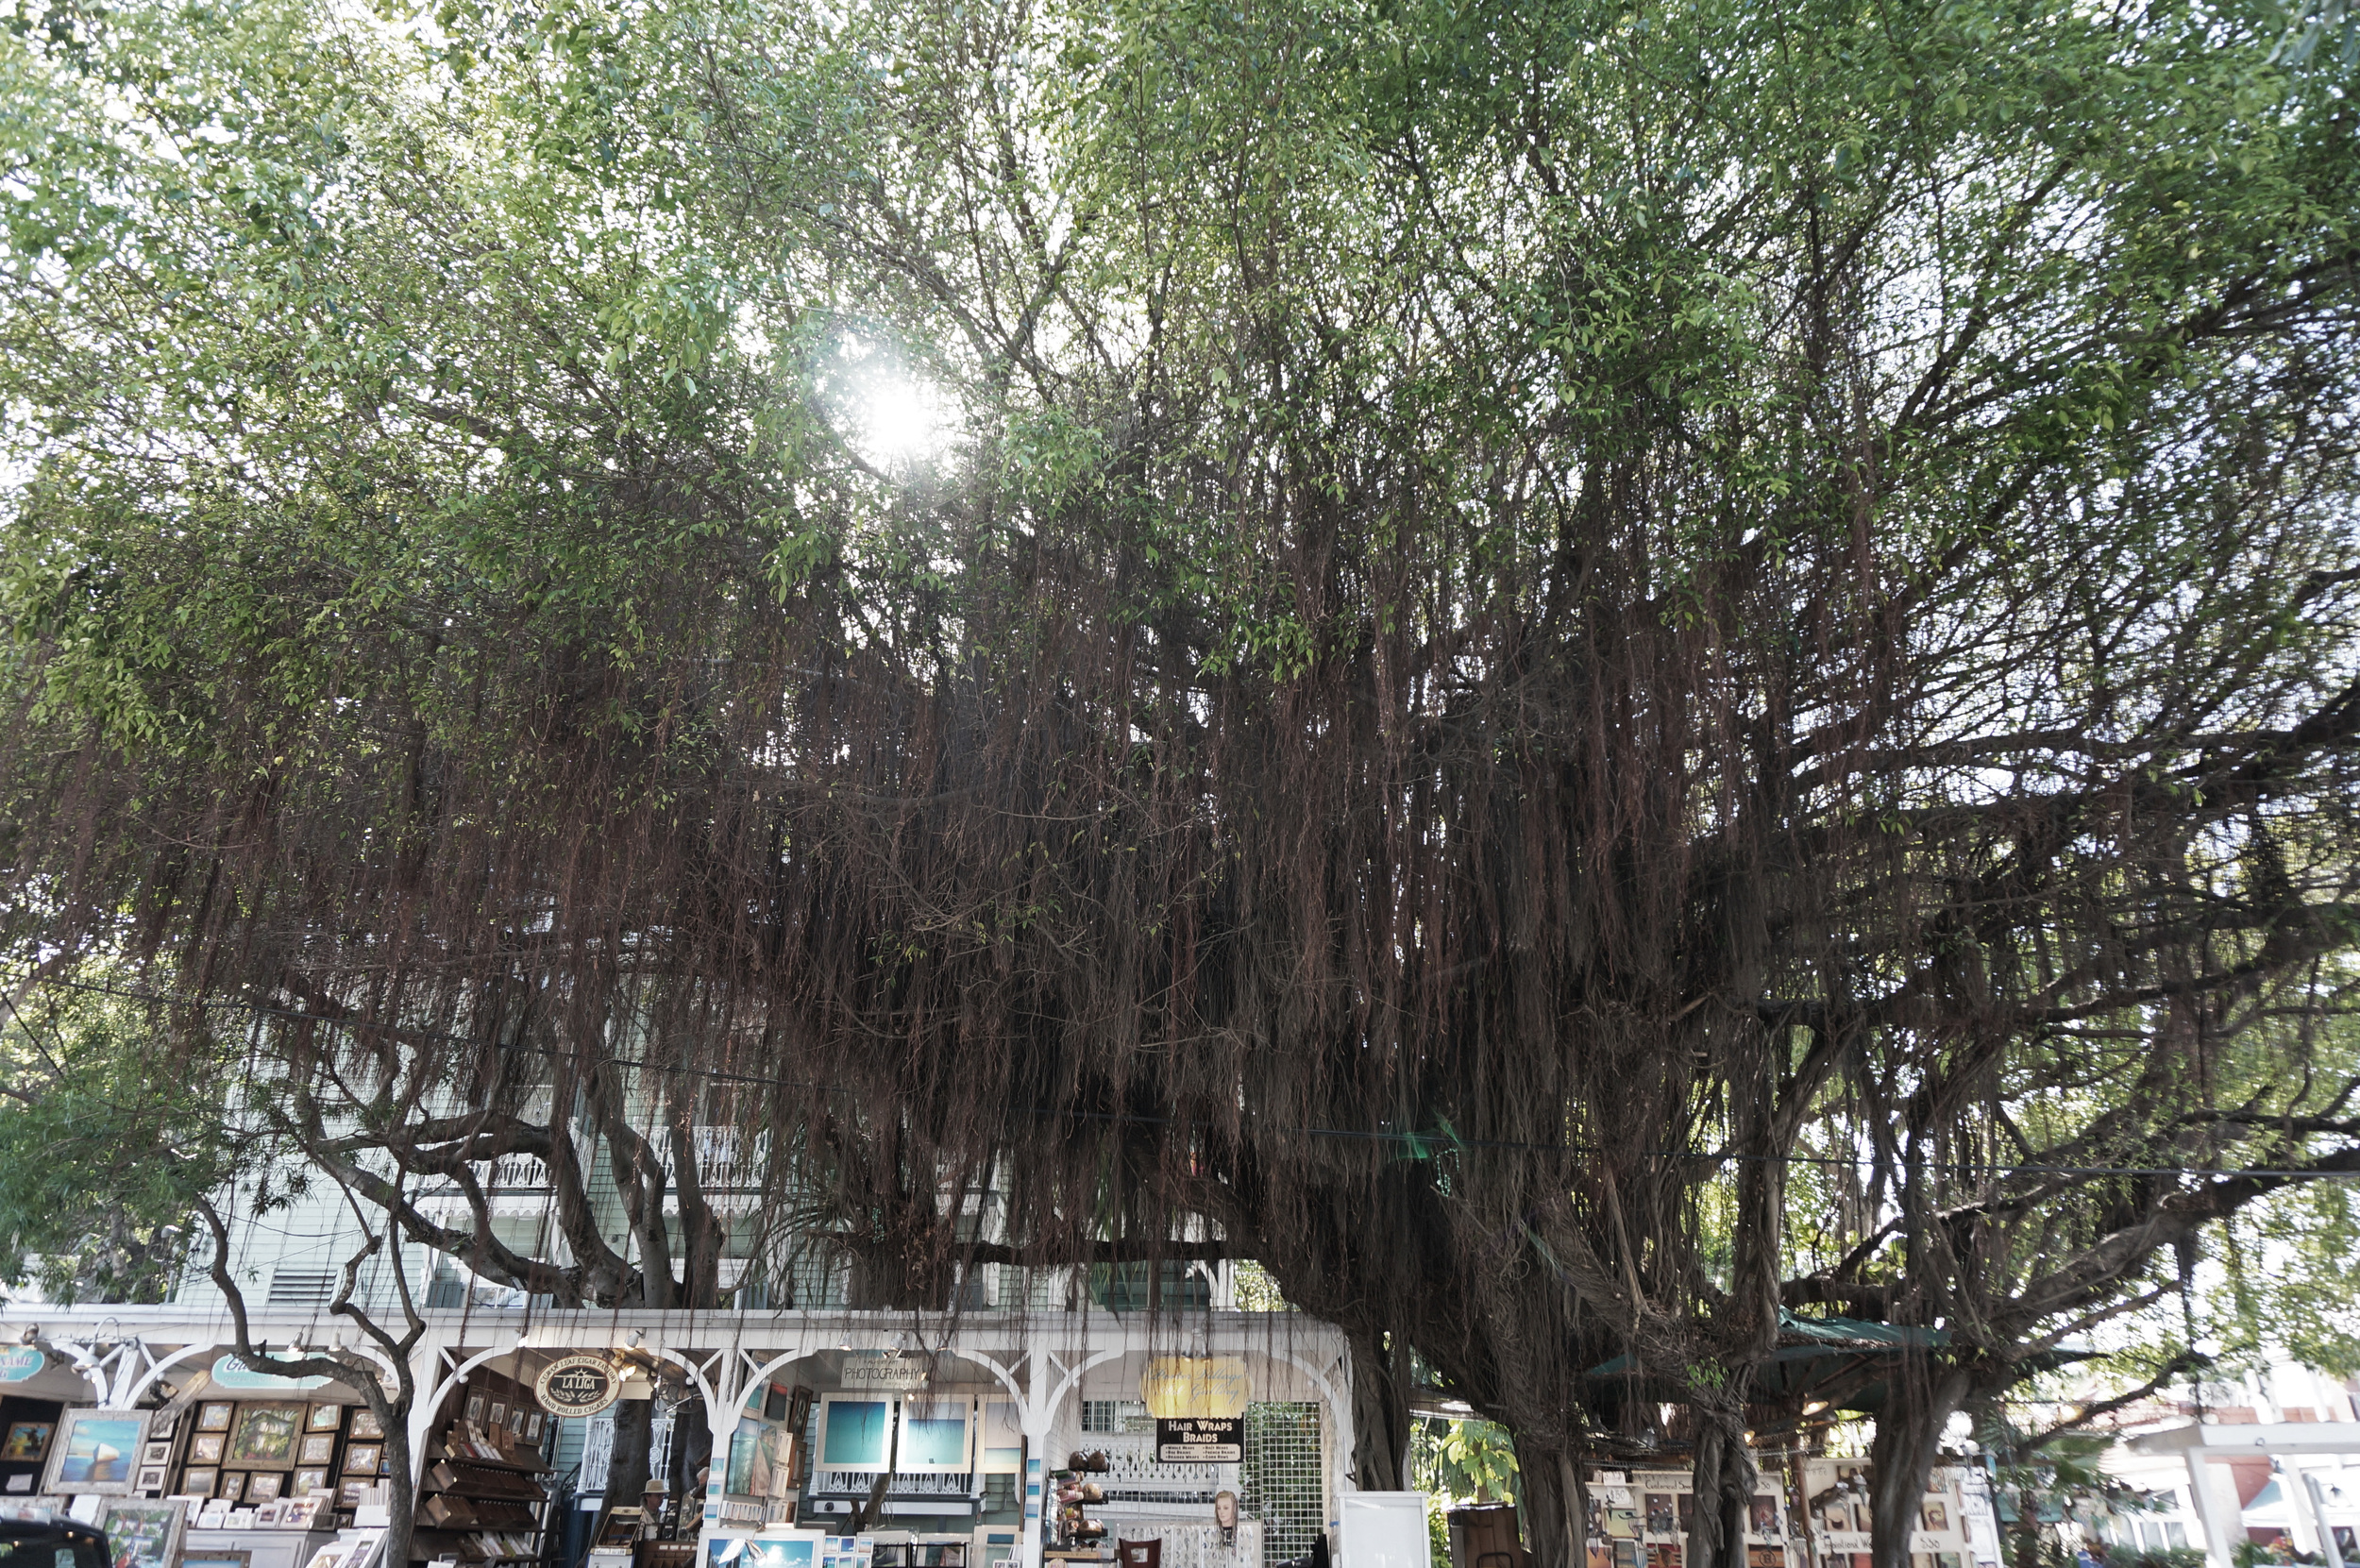 Trees of Key West